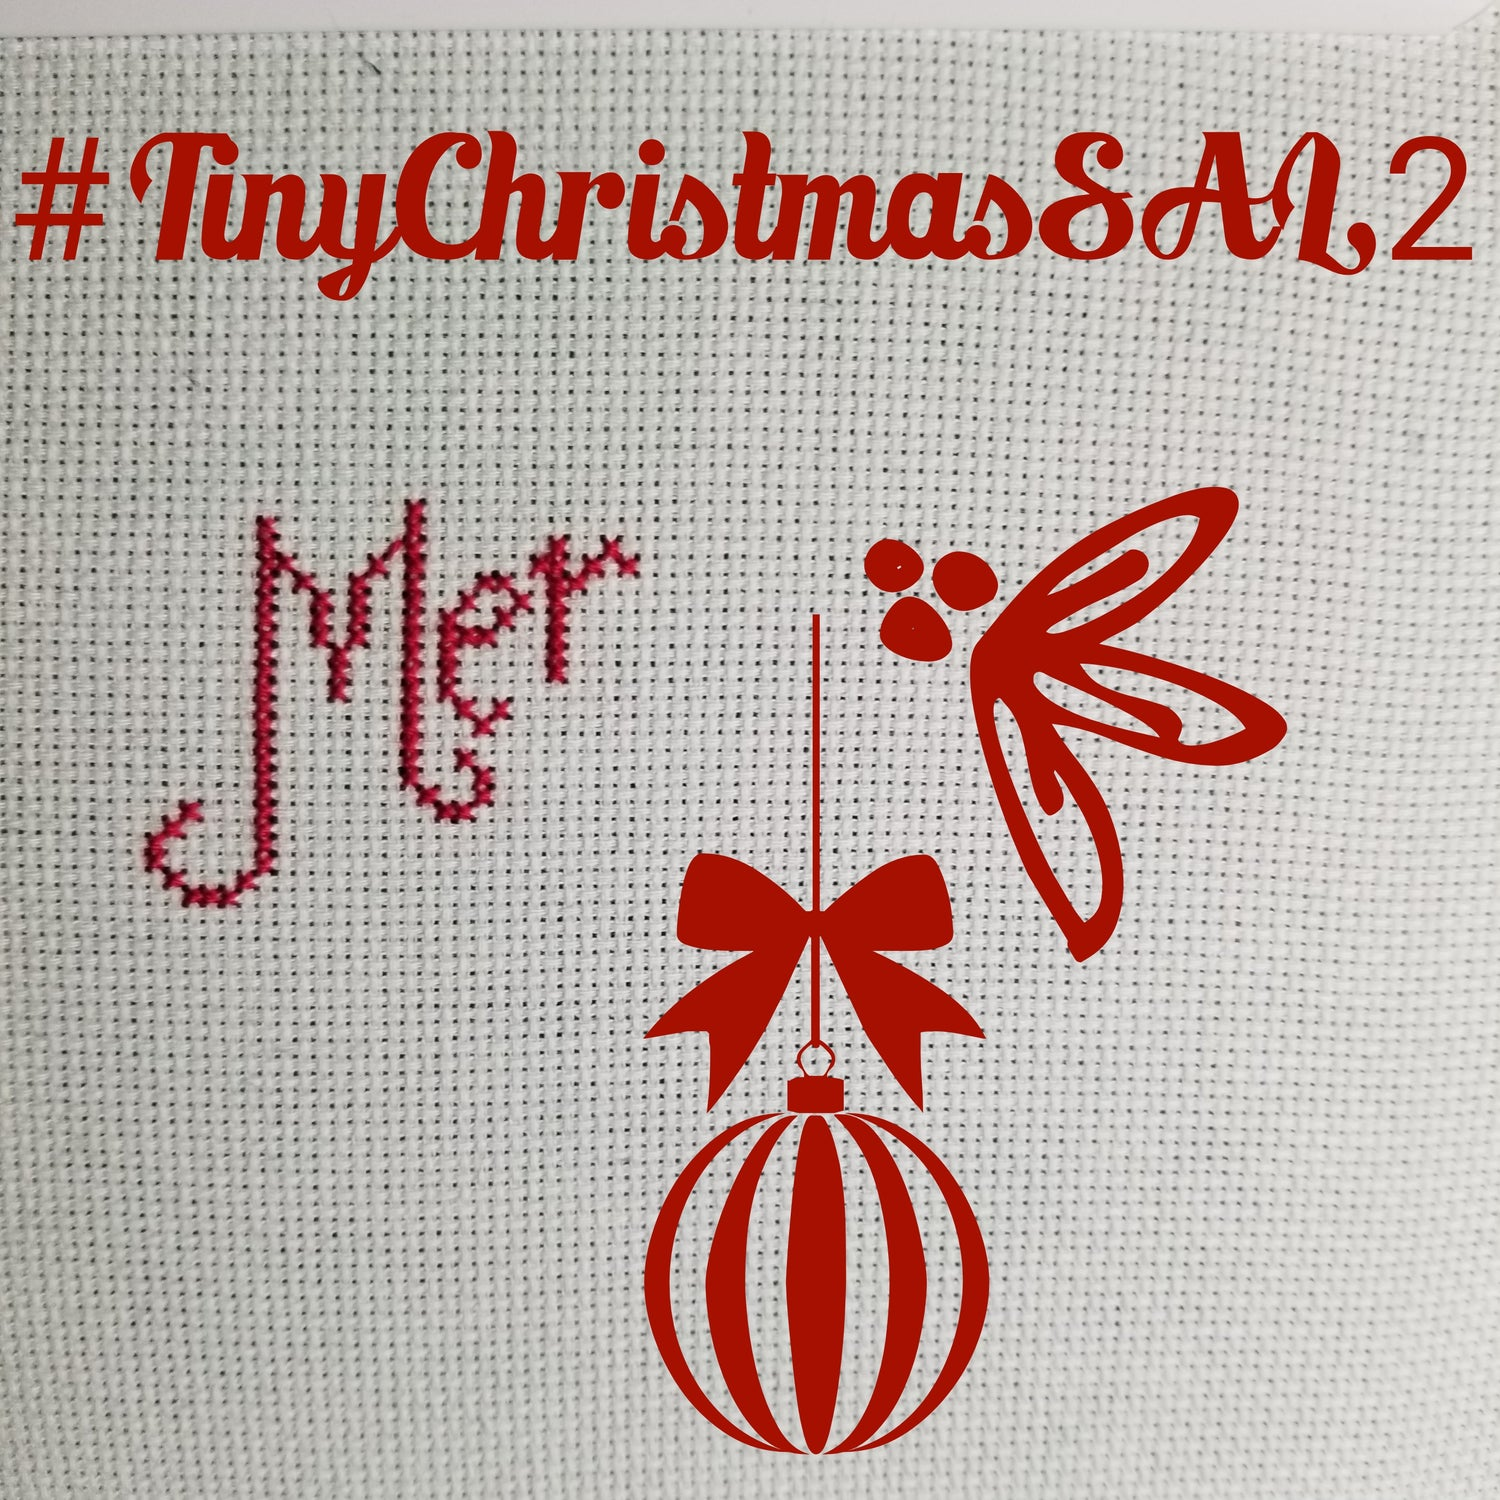 Image of Tiny Christmas StitchAlong 2